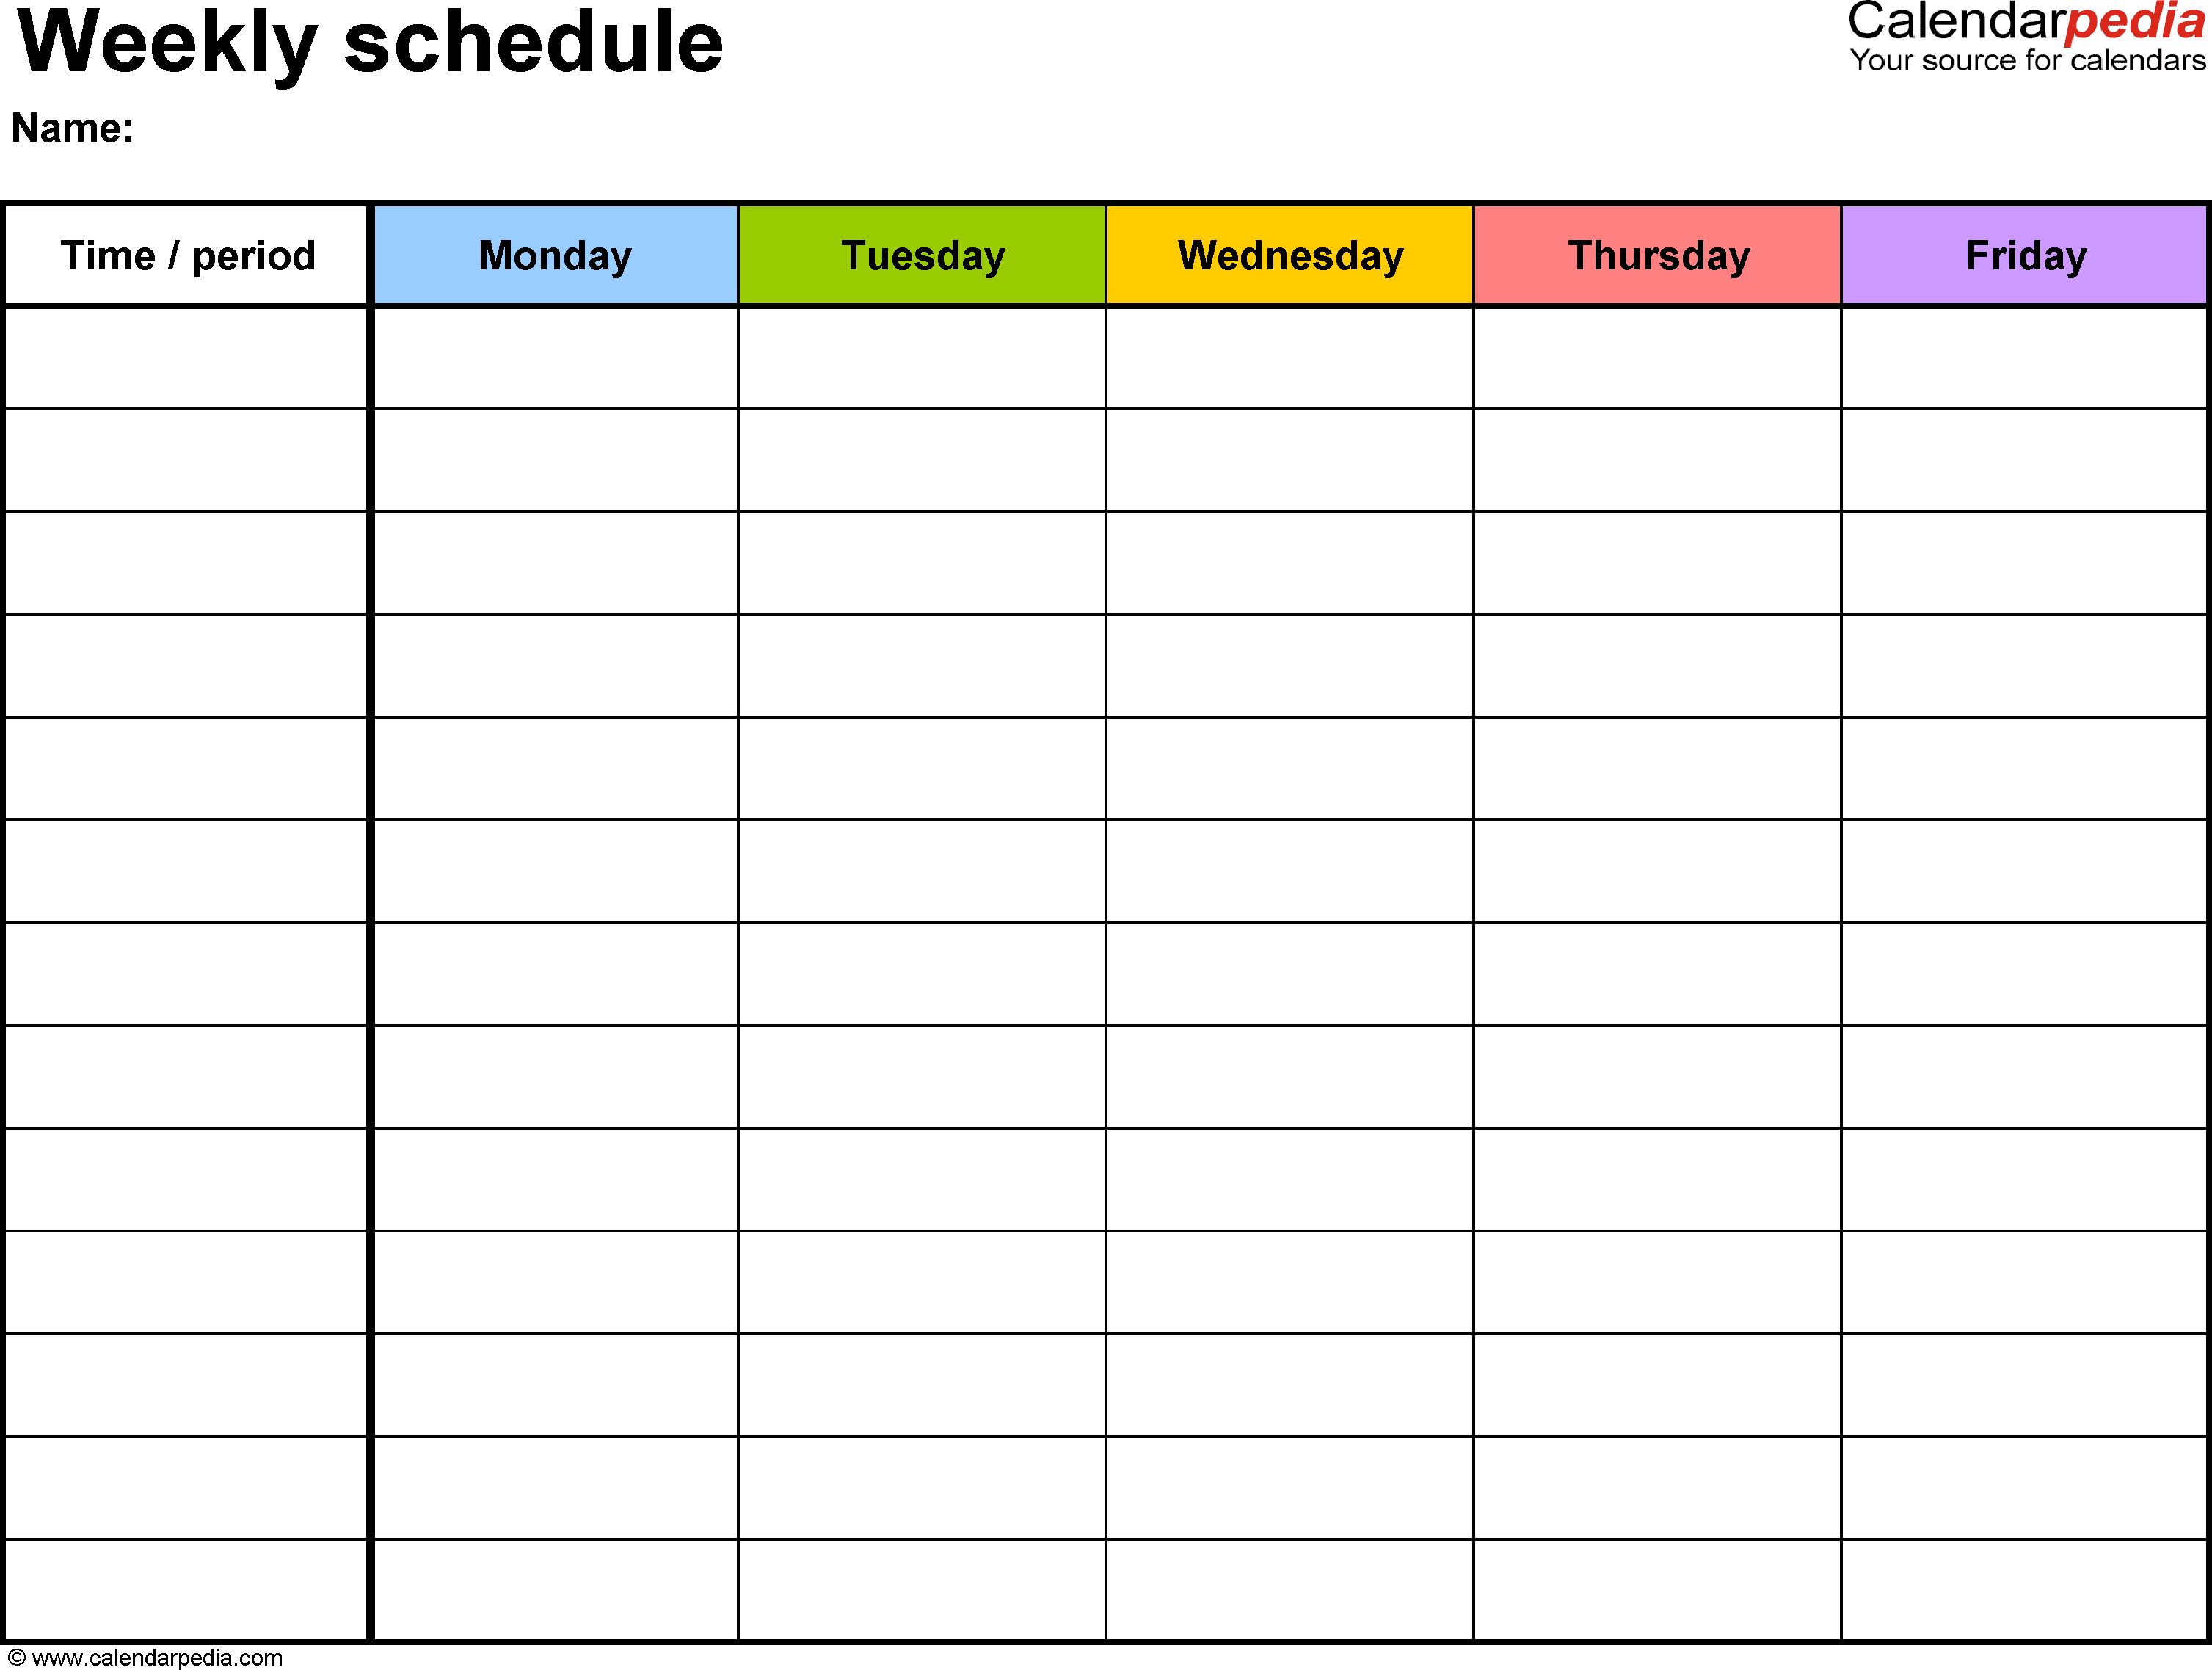 Free Weekly Schedule Templates For Word - 18 Templates in Blank Weekly Calender With Time